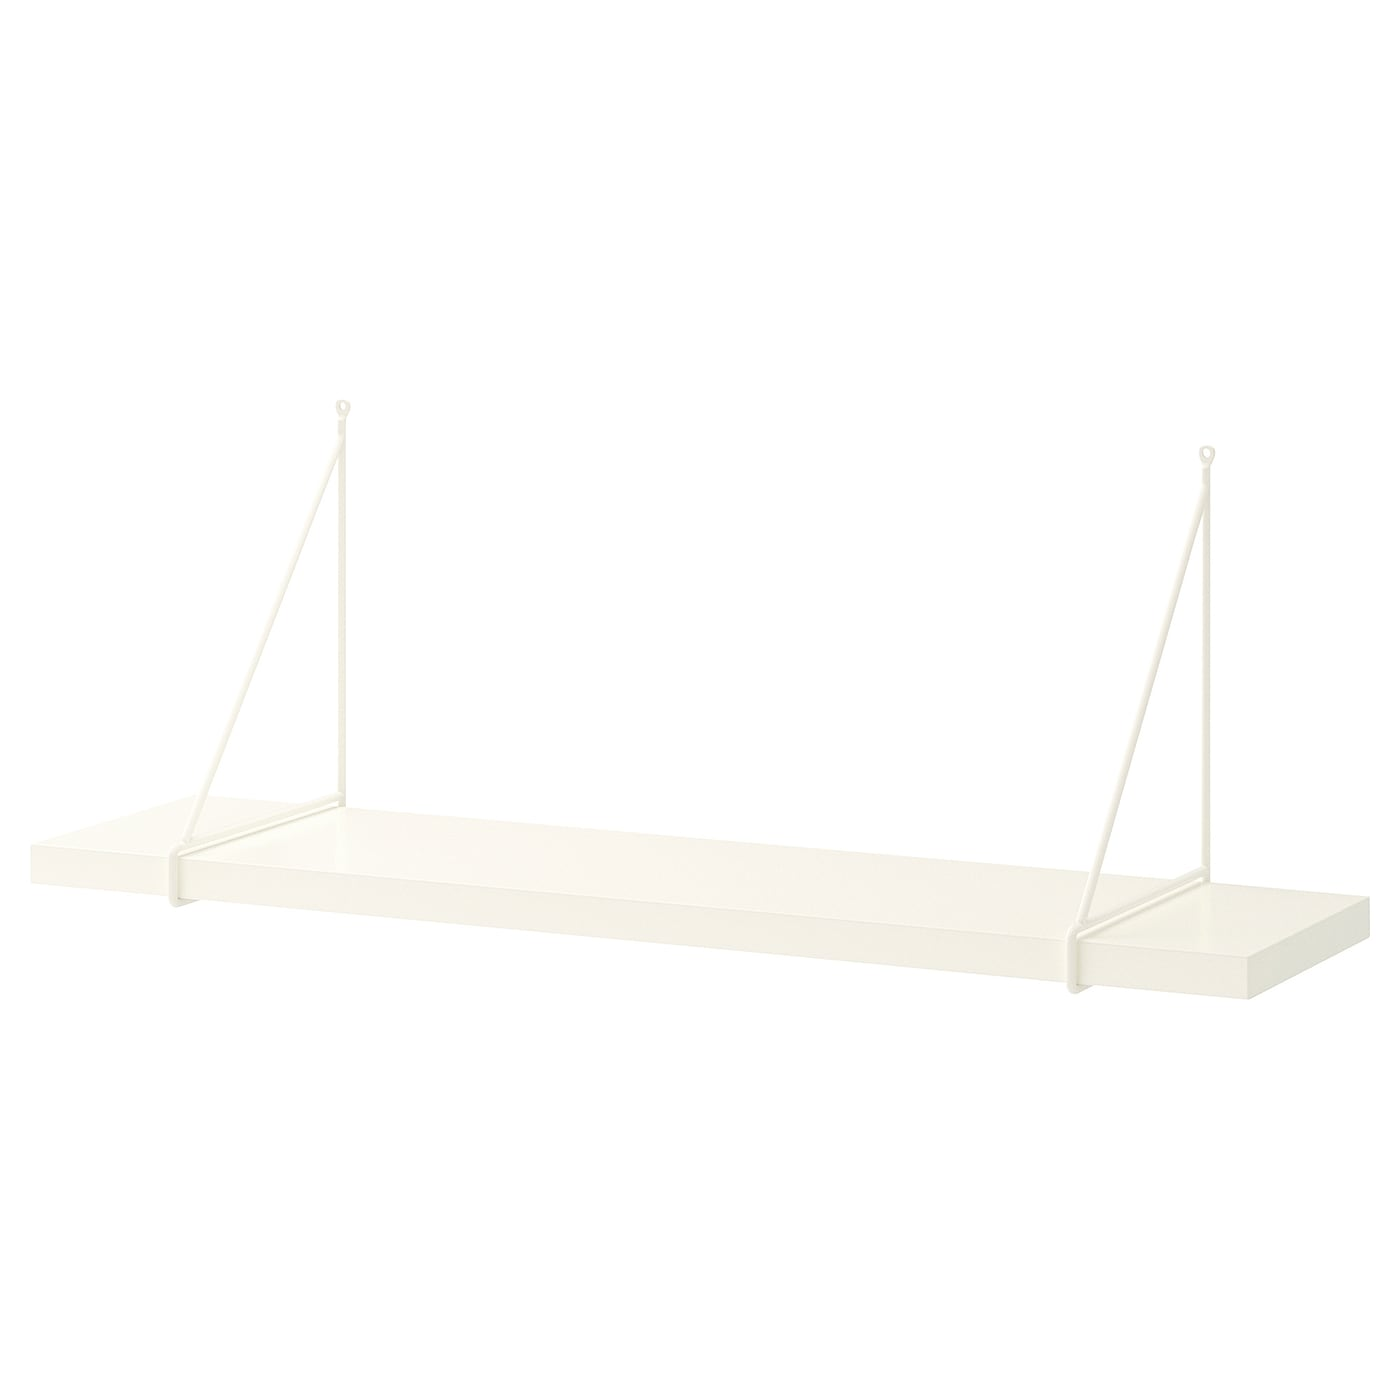 IKEA PERSHULT/BERGSHULT wall shelf